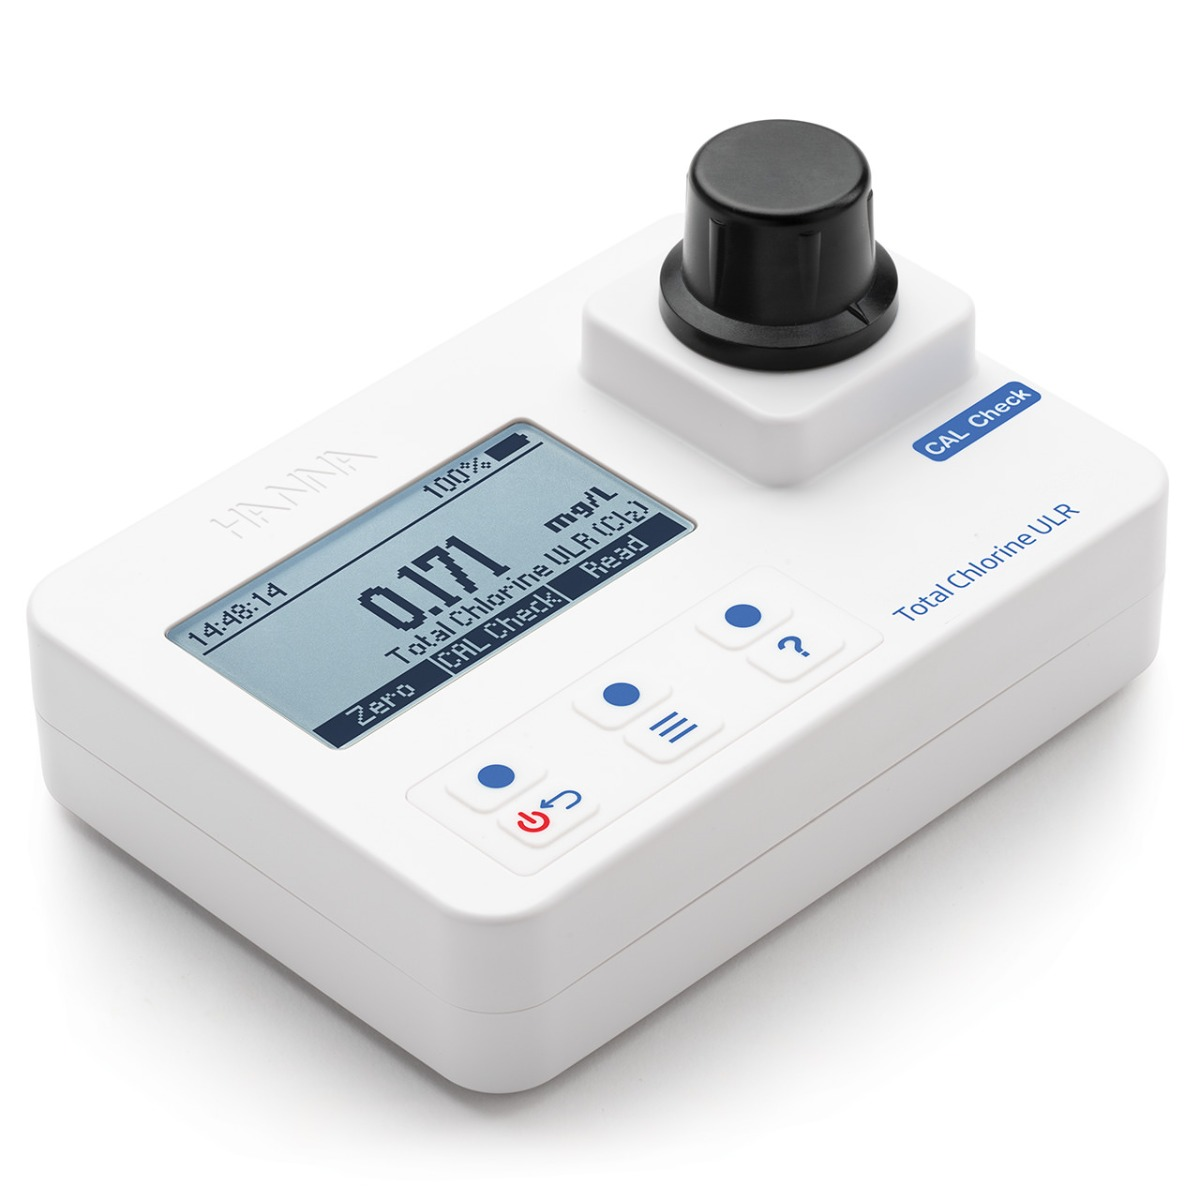 Total Chlorine Ultra-Low-Range Portable Photometer with CAL Check – HI97761